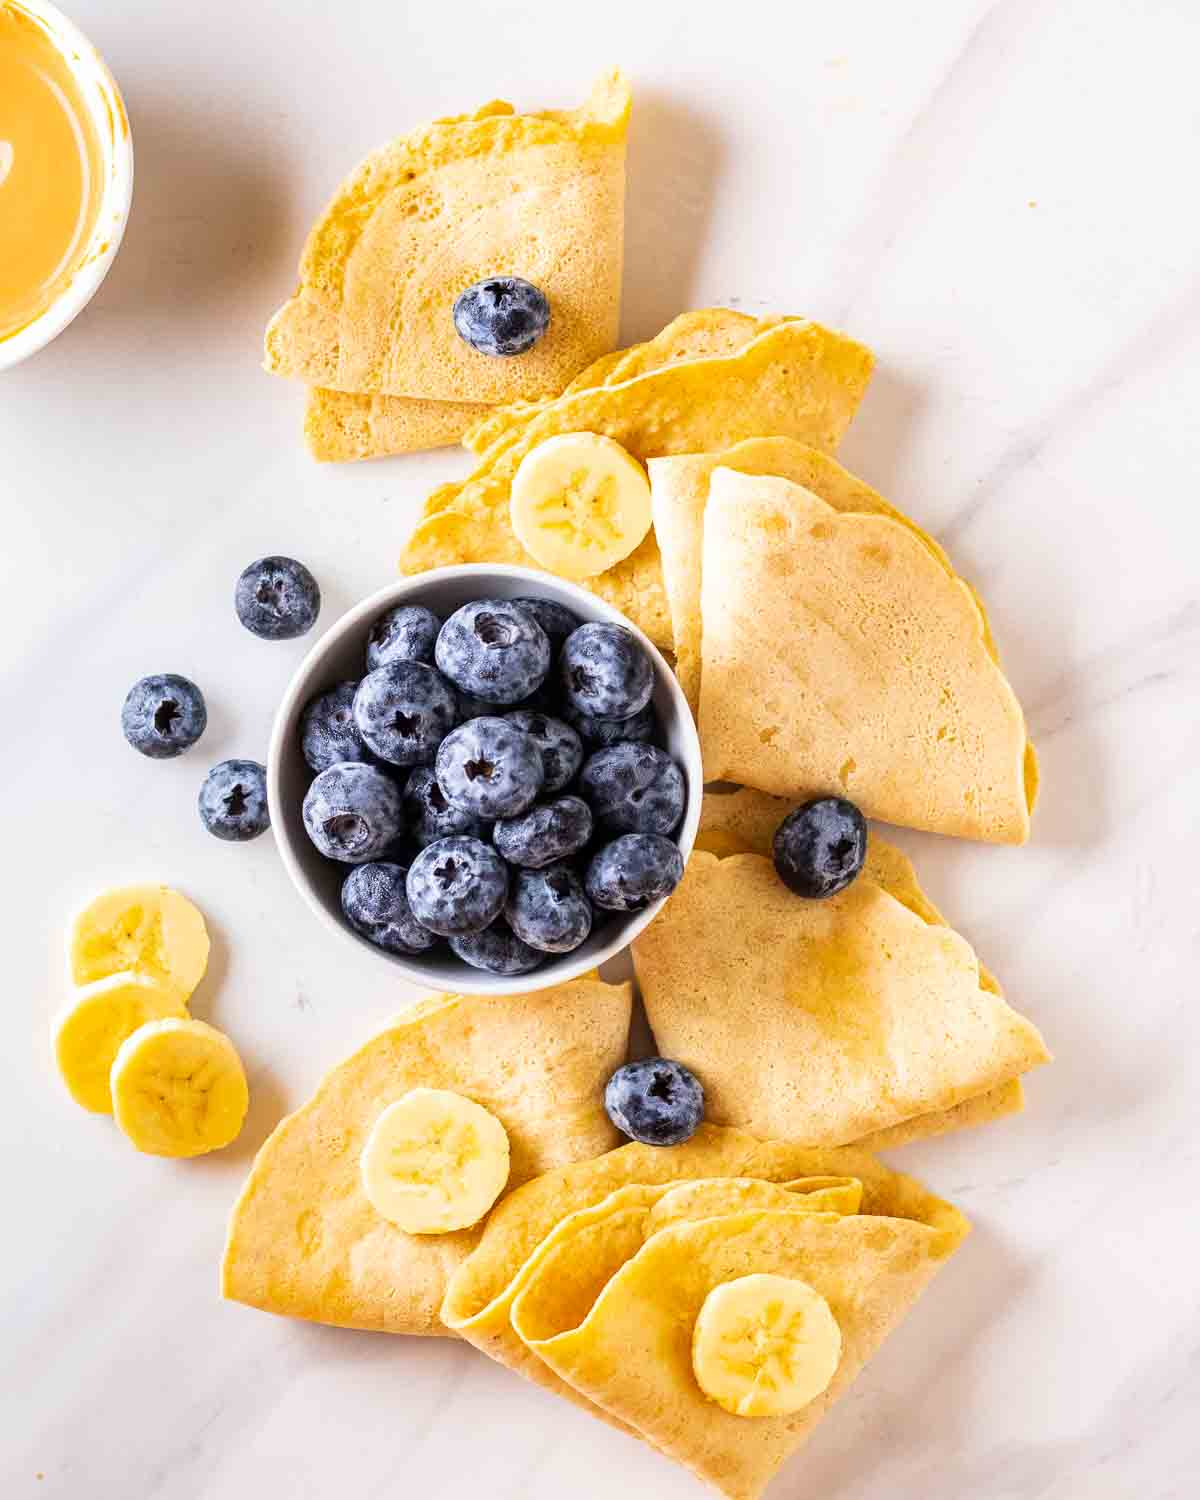 Folded crepes arranged on a white background topped with blueberries and sliced banana.